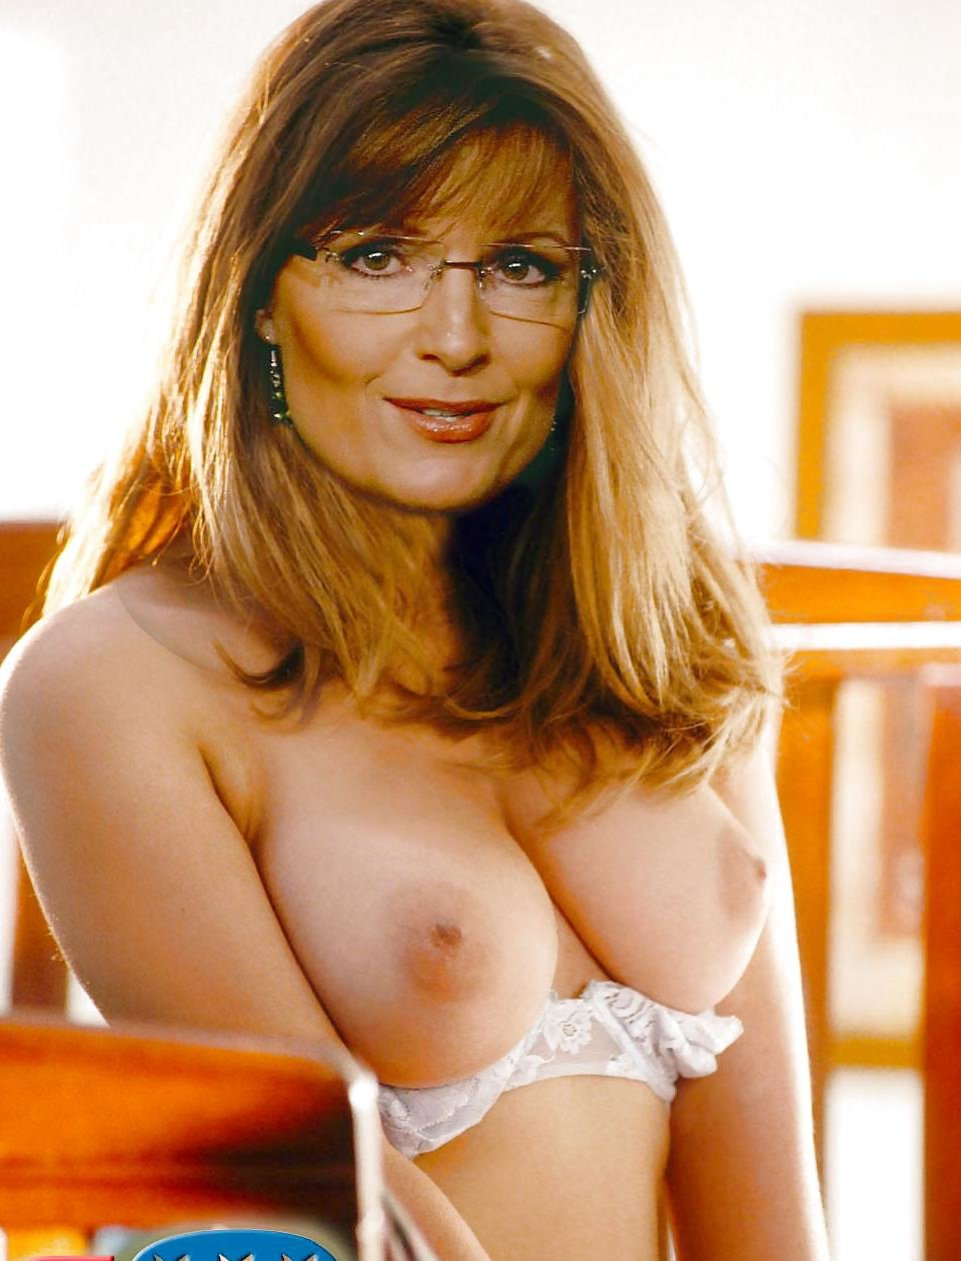 Agree, very palin nude saray pity